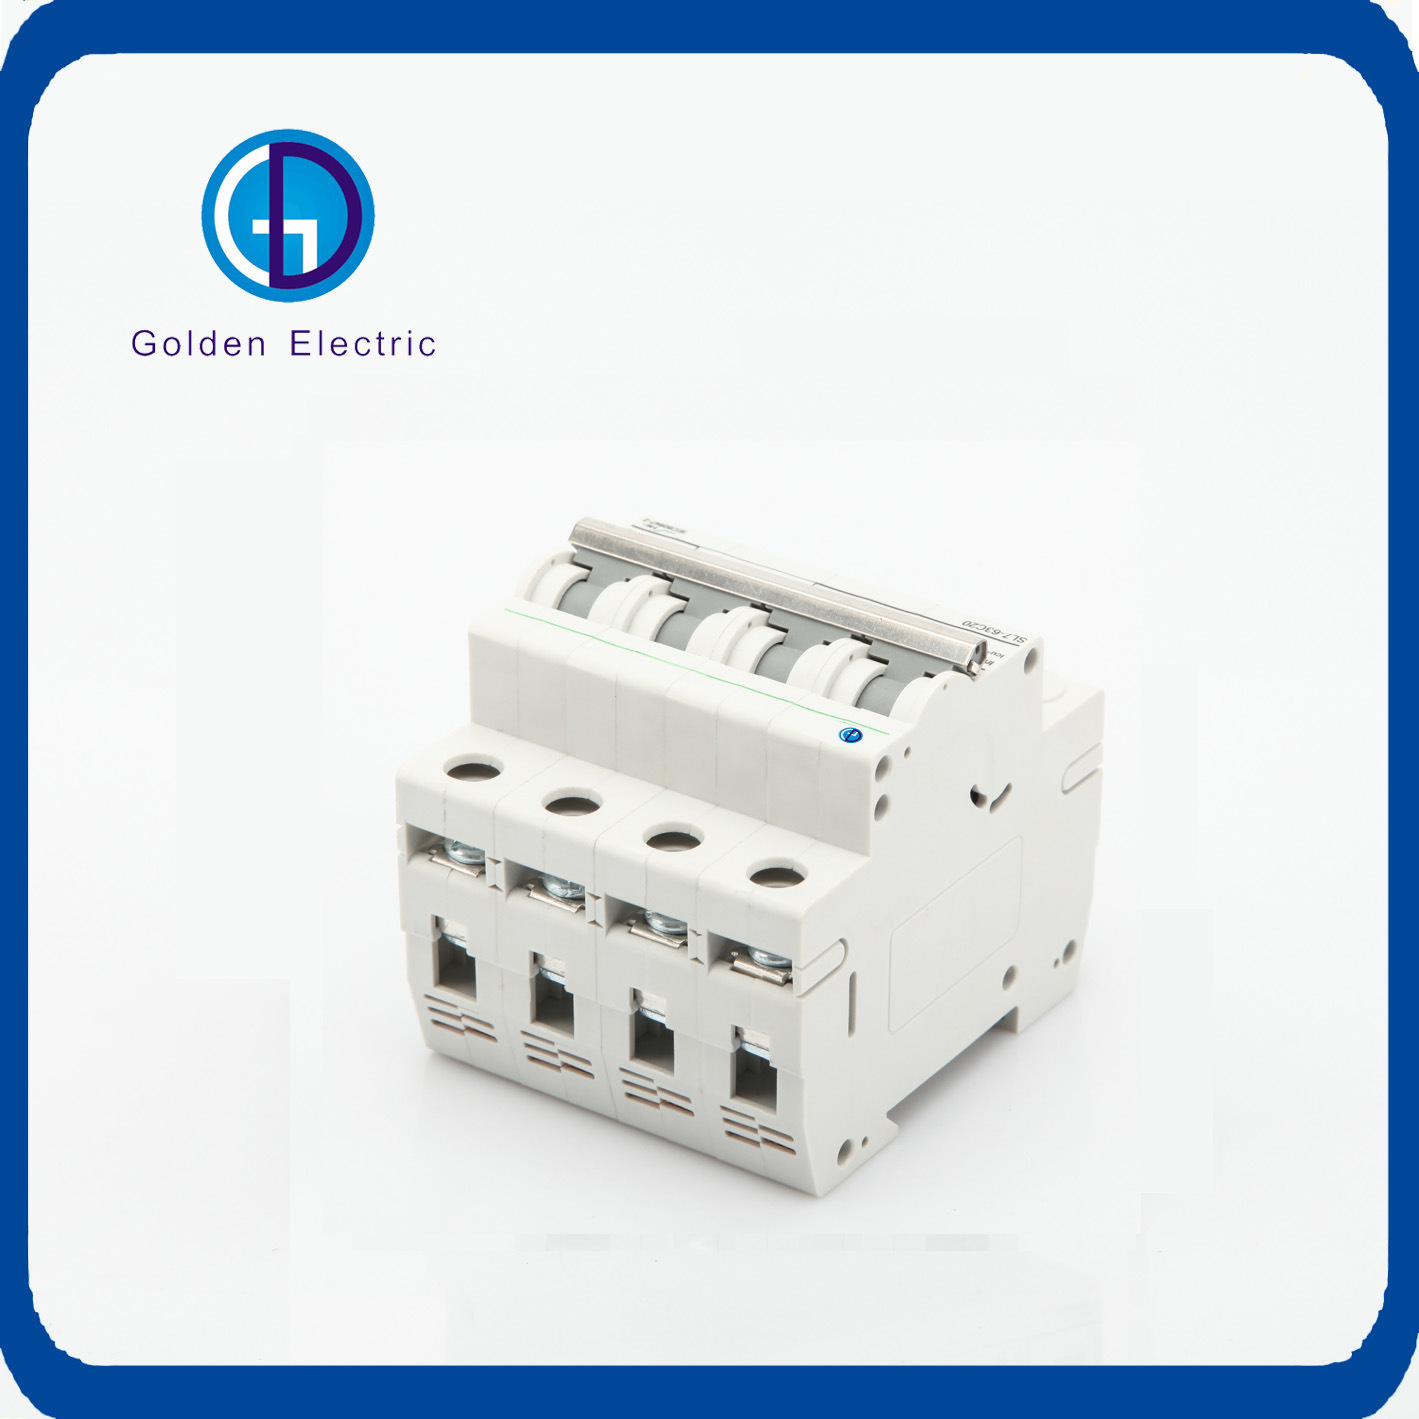 China Solar Pv Dc 250v 500v 750v 800v 1000v C63 Miniature Circuit Electronics Breaker Mcb Is A Device Designed To